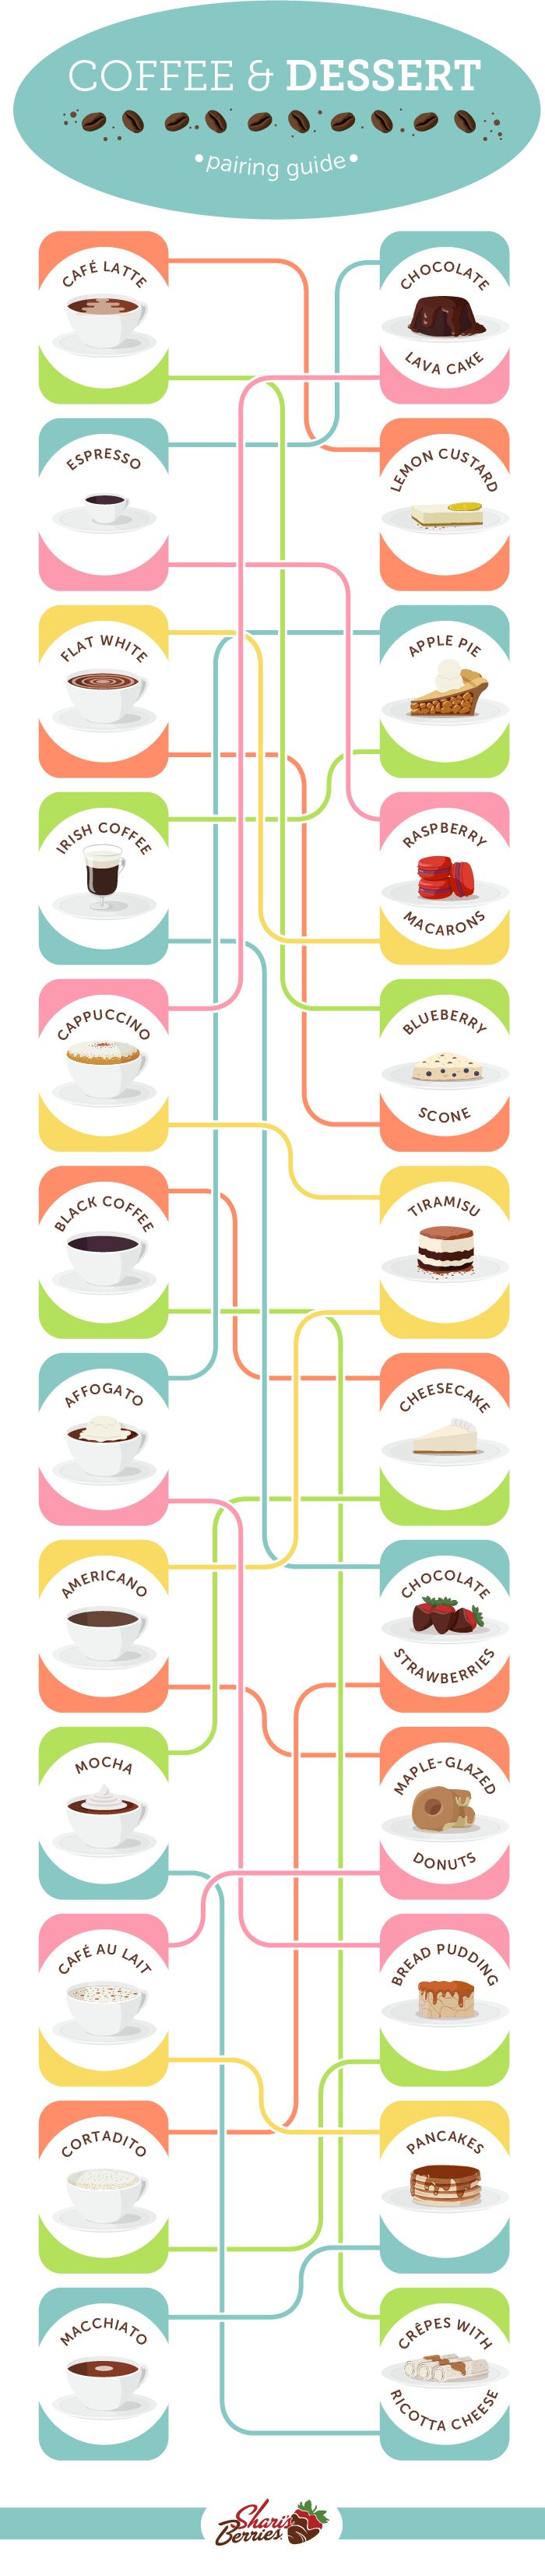 take a look at this handy chart to see what type of coffee pairs best with a variety of desserts